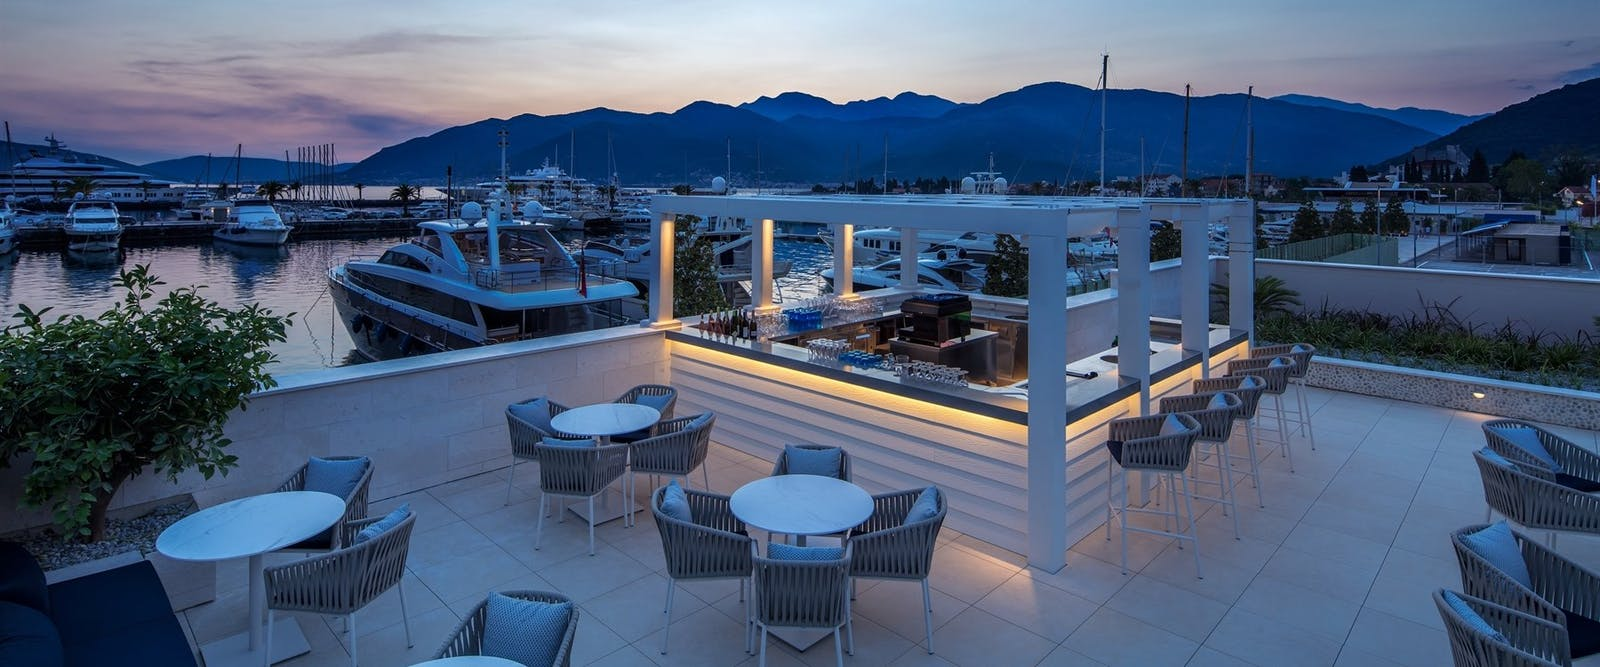 Pool bar at Regent Porto, Montenegro